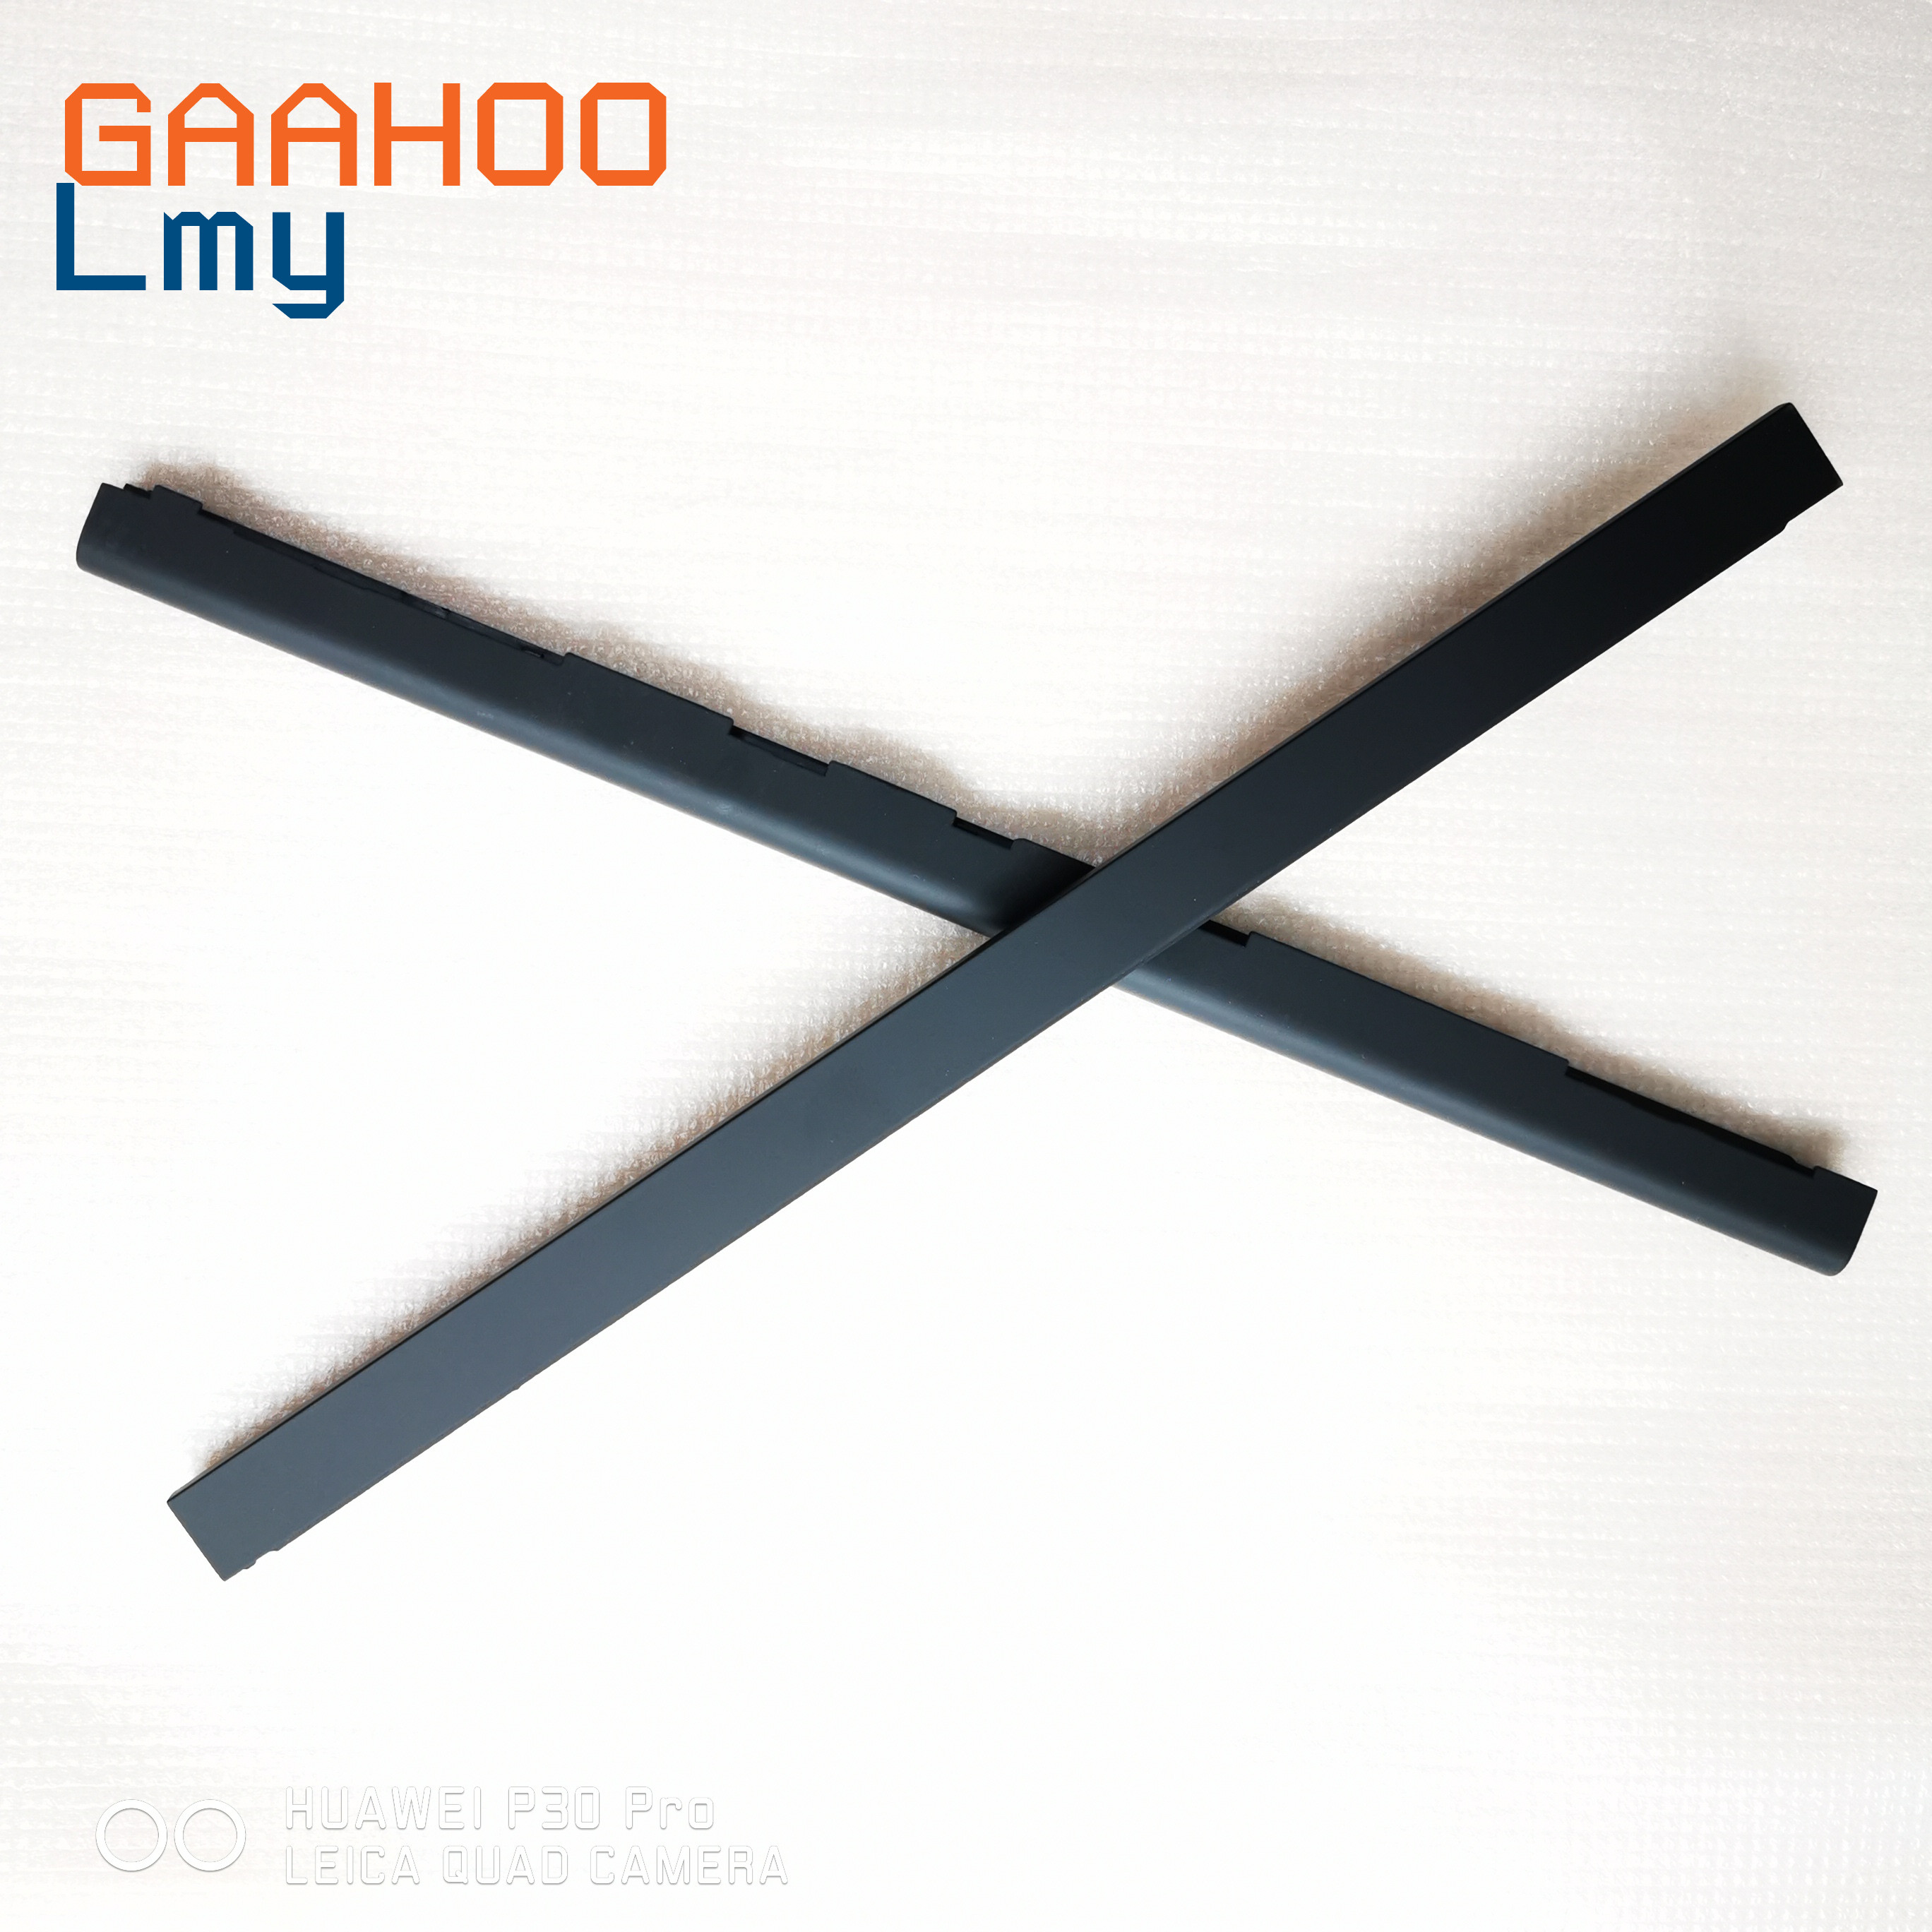 Brand New Original Laptop Parts For Dell XPS15 9550 9560 9570  PRECISION 5510 5520  5530 Antenna Cover Hinges Cap 0G0XYV